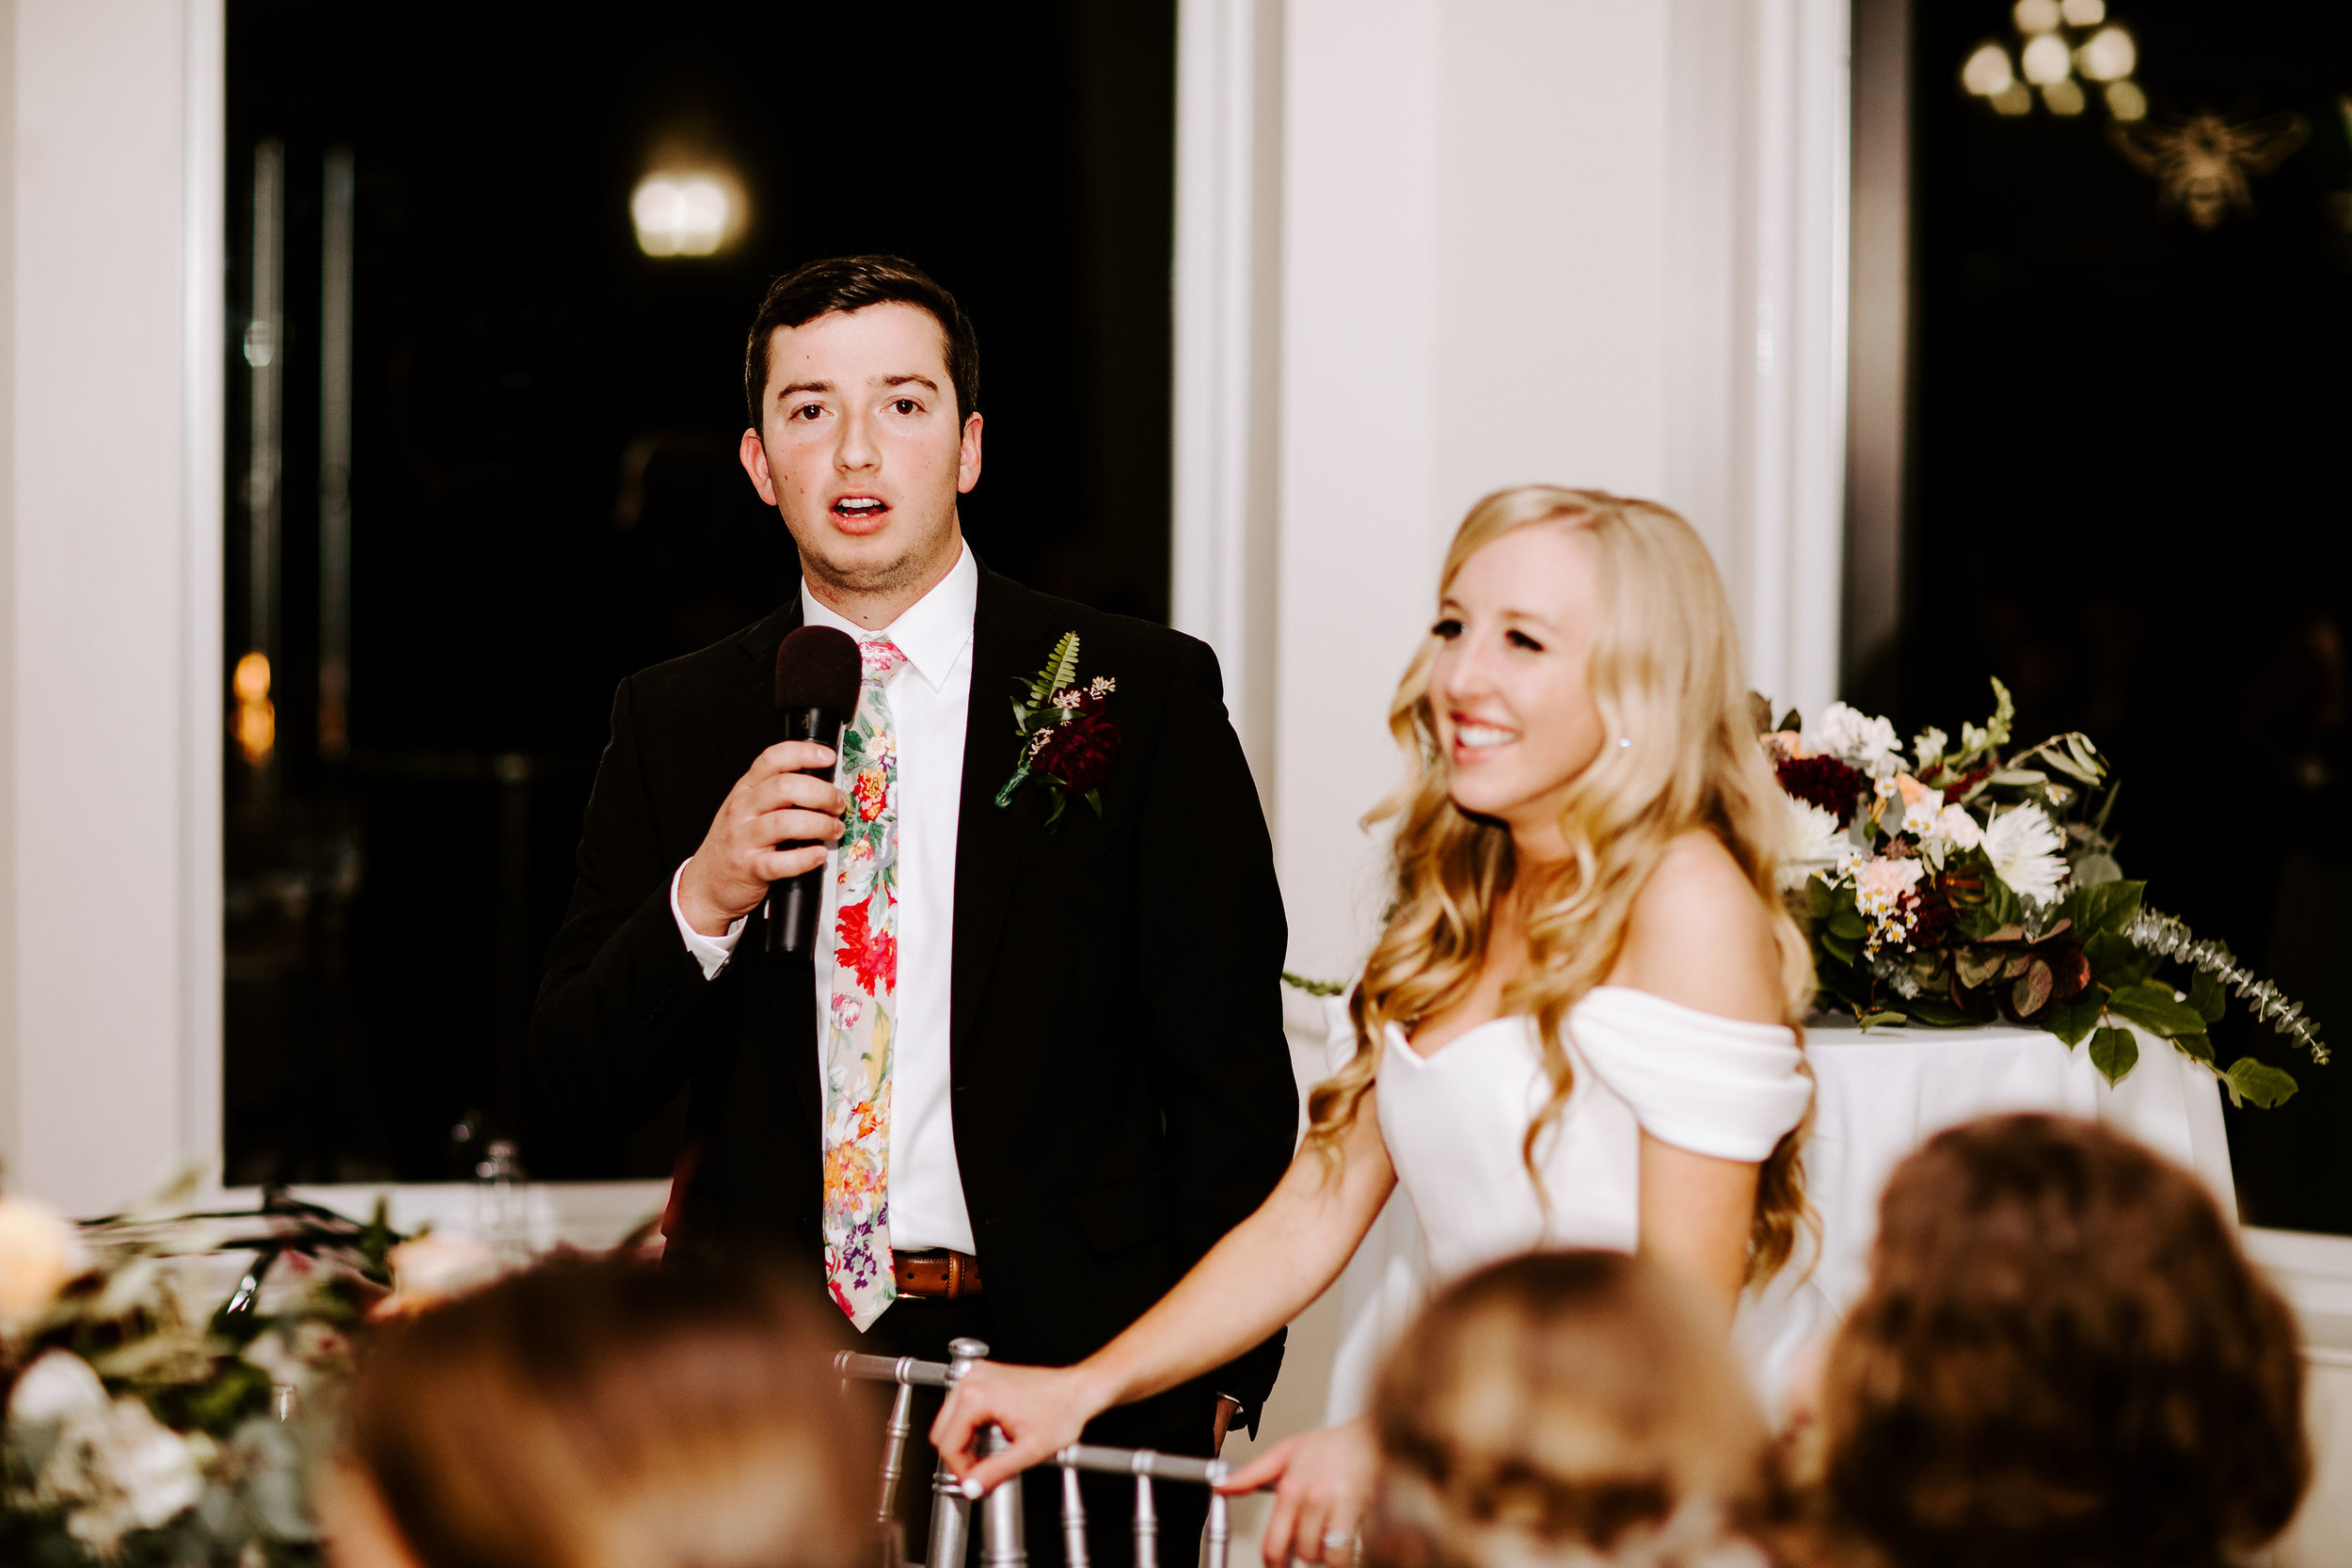 Winehaven-Winery-Wedding-Reception-Speeches-Minneapolis-MN.jpg